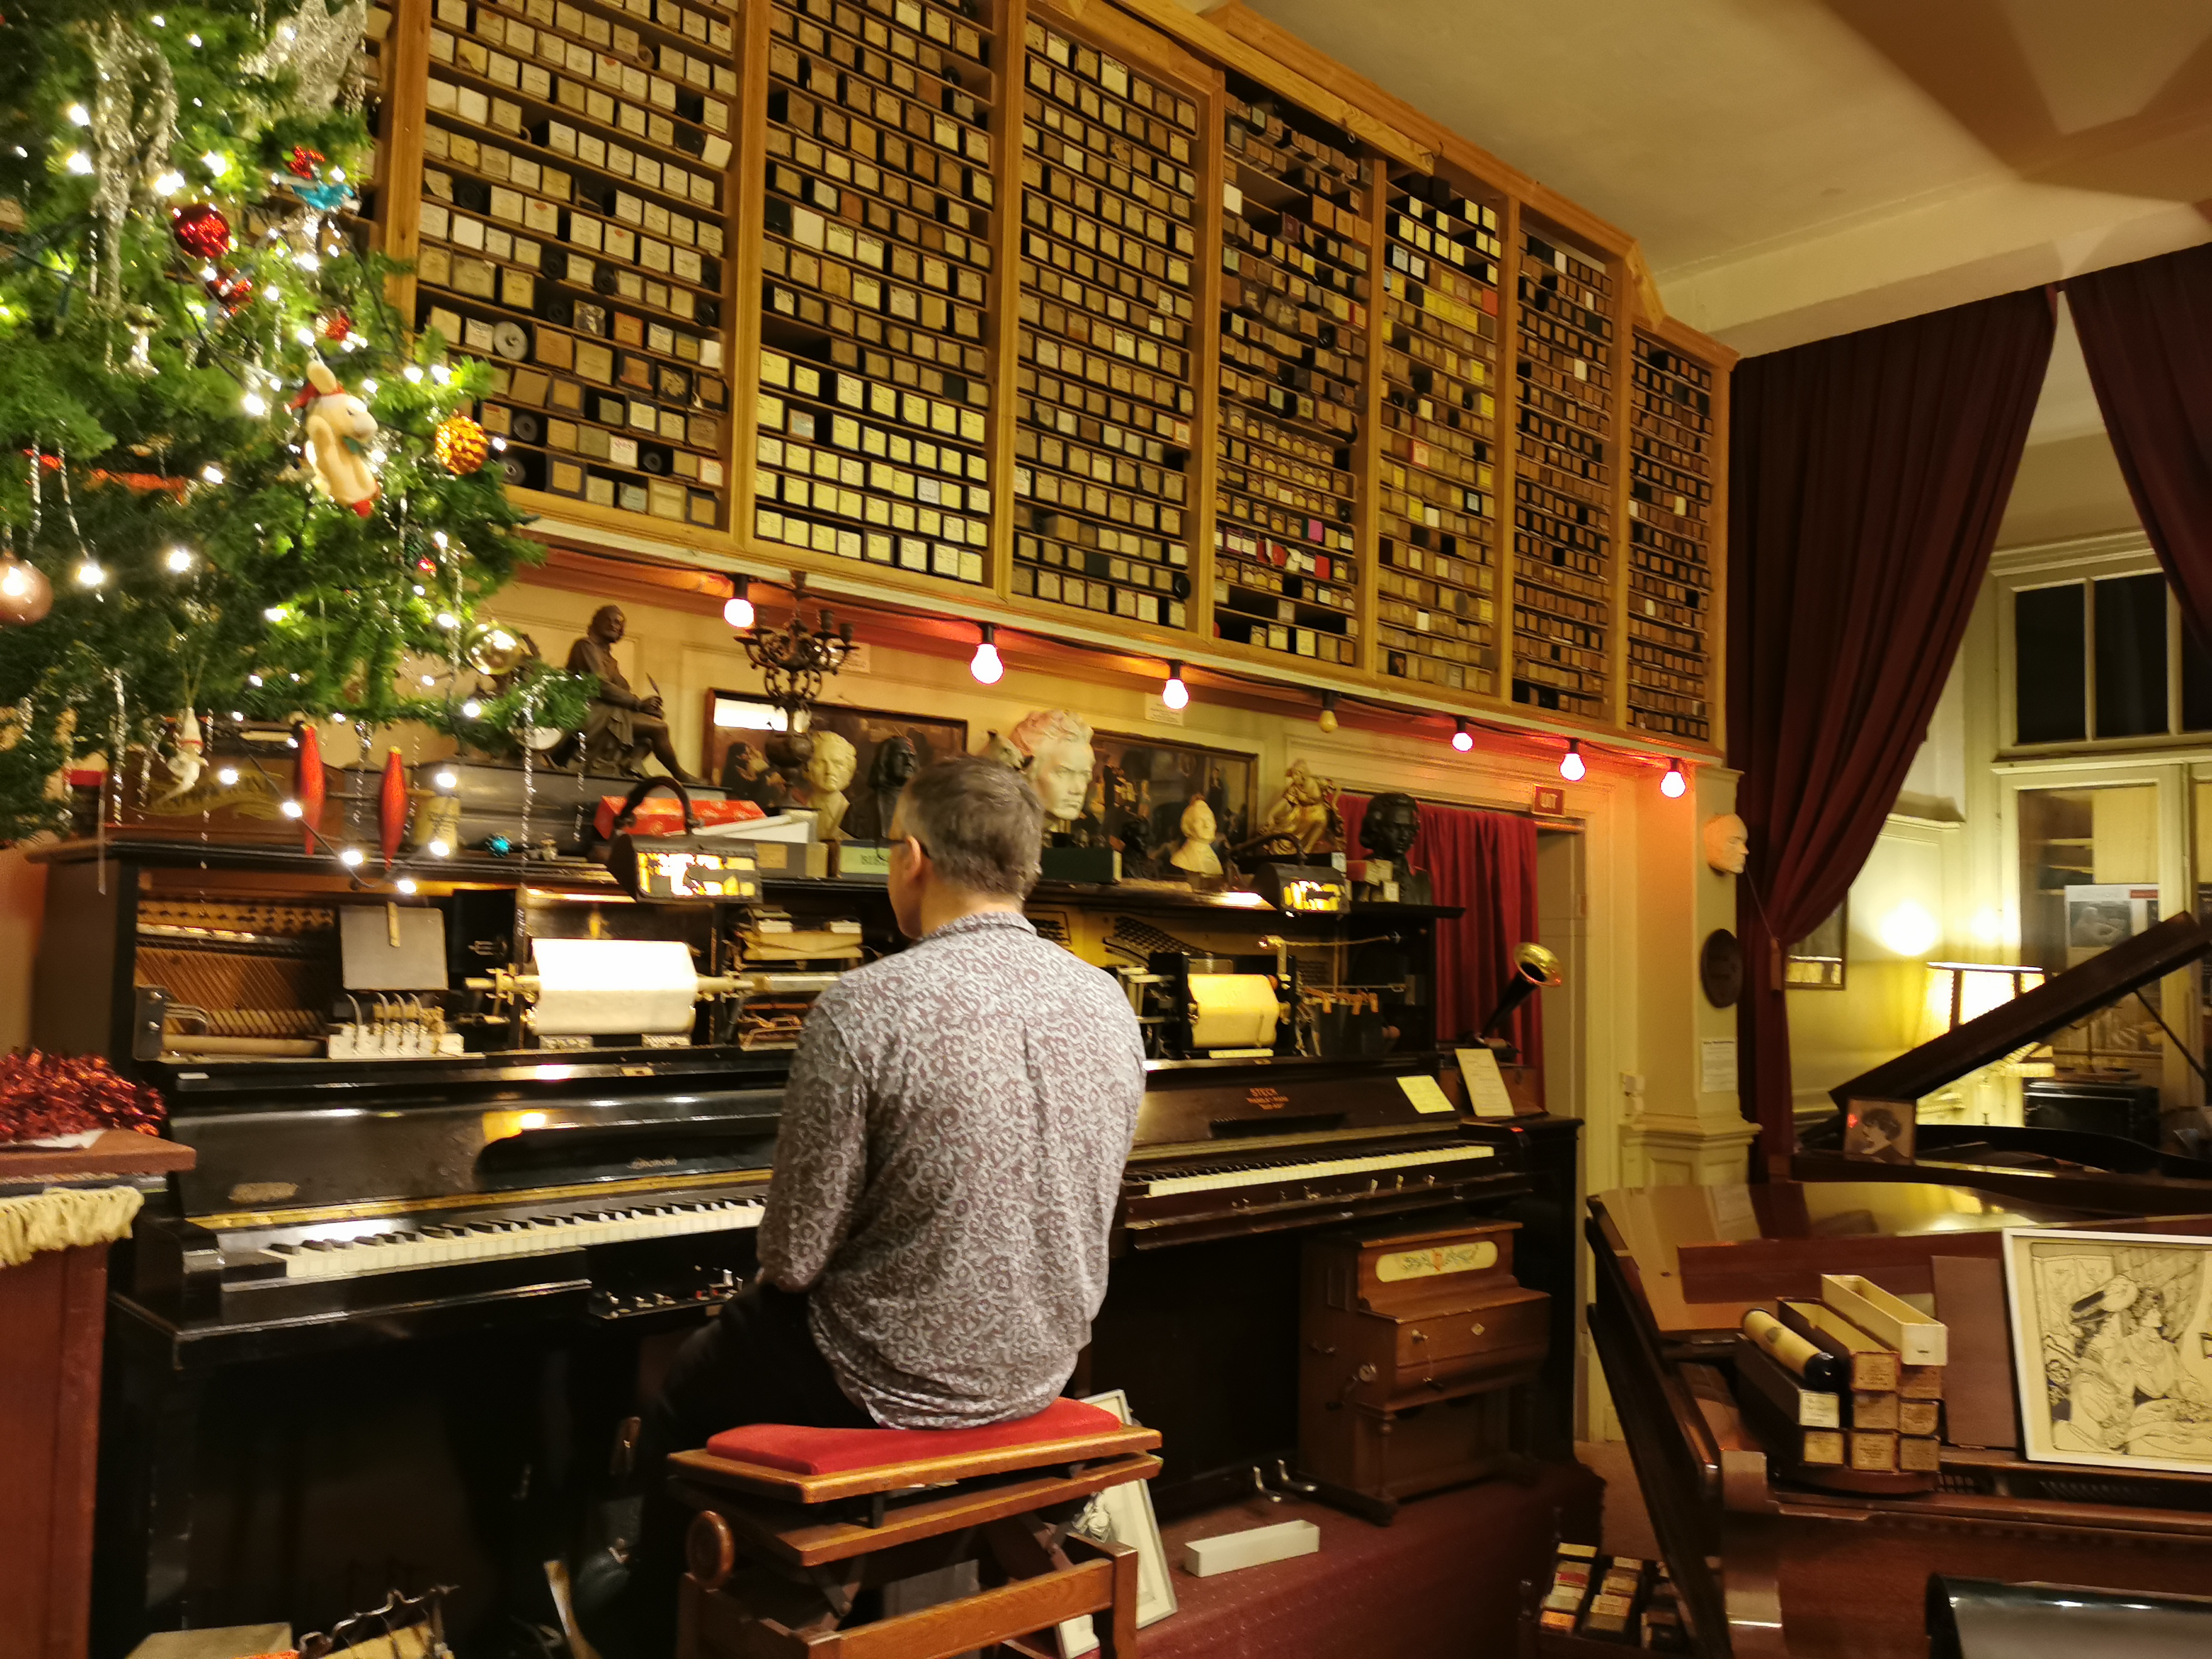 Pianola Museum in the Jordaan